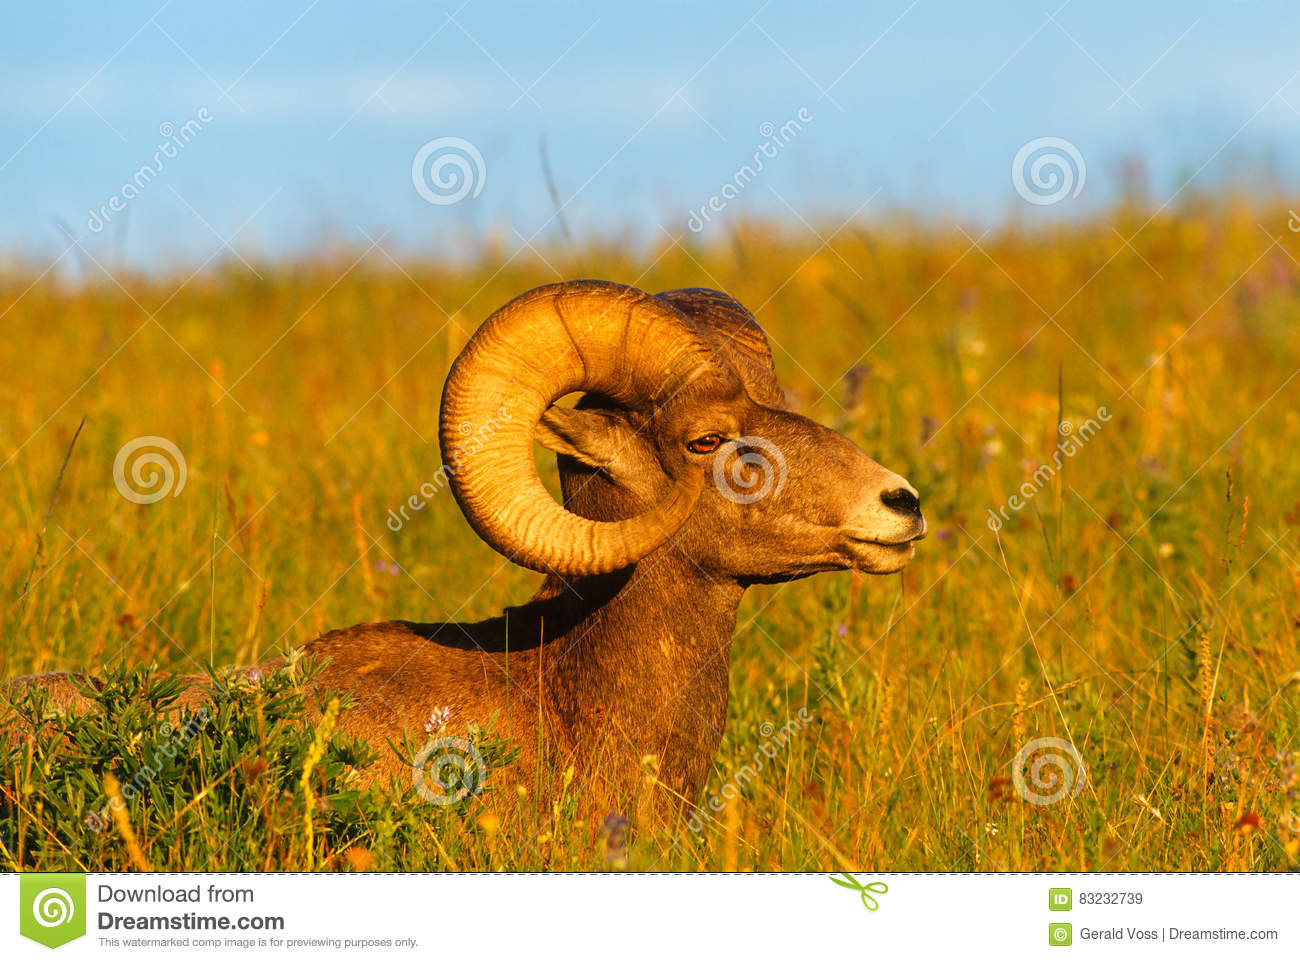 Download Close Up Profile Portrait Big Bighorn Sheep Ram Stock Image - Image of montana, mountain: 83232739